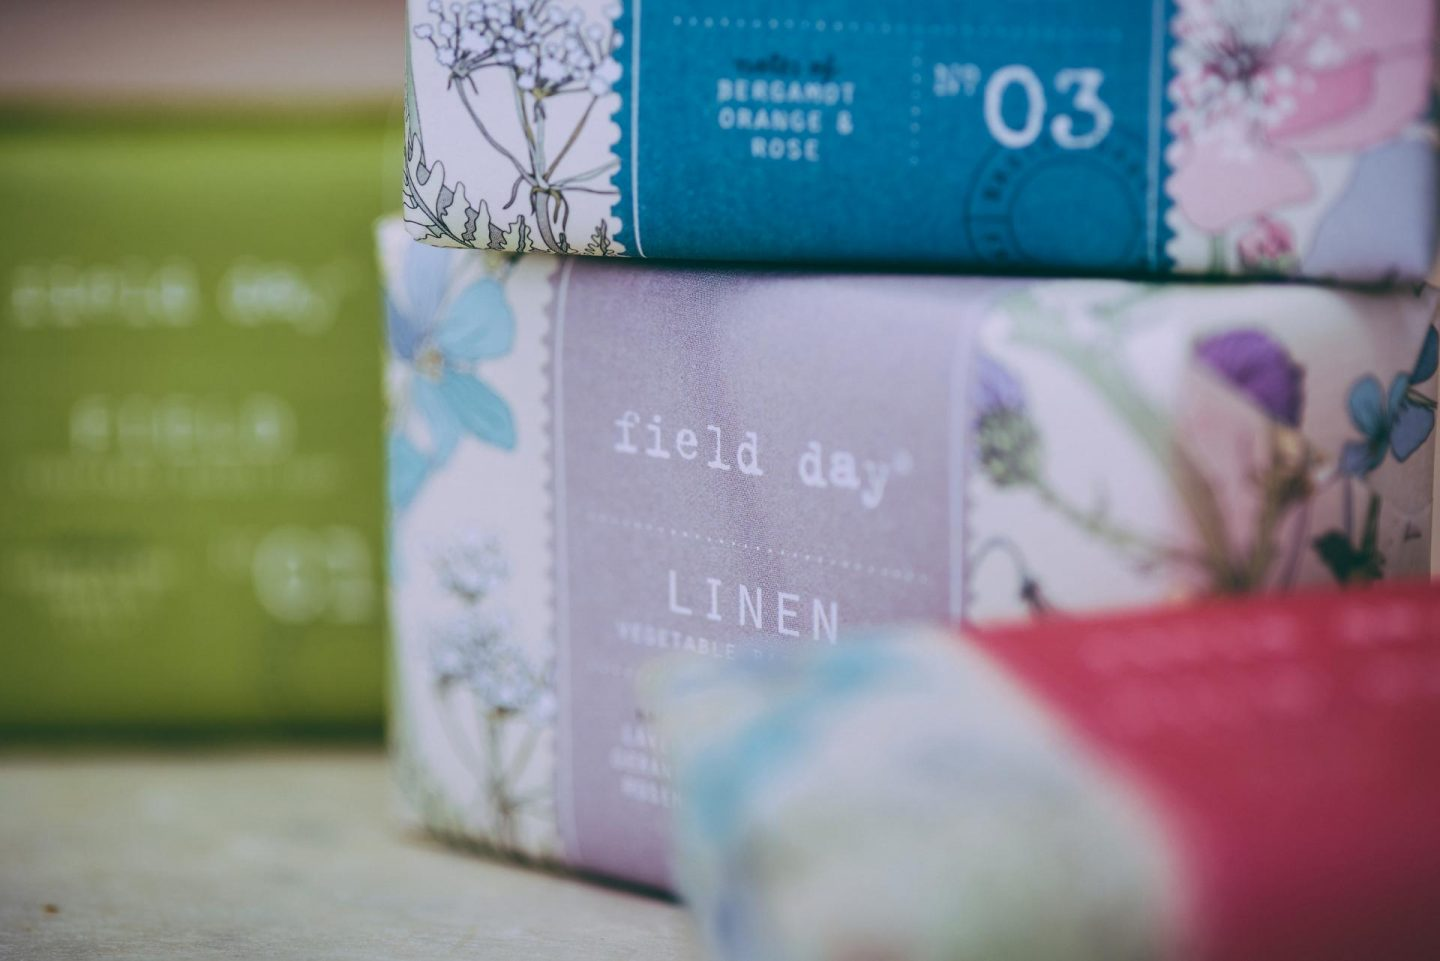 Interview with Alix Mulholland, Creator of Field Day and Field Apothecary